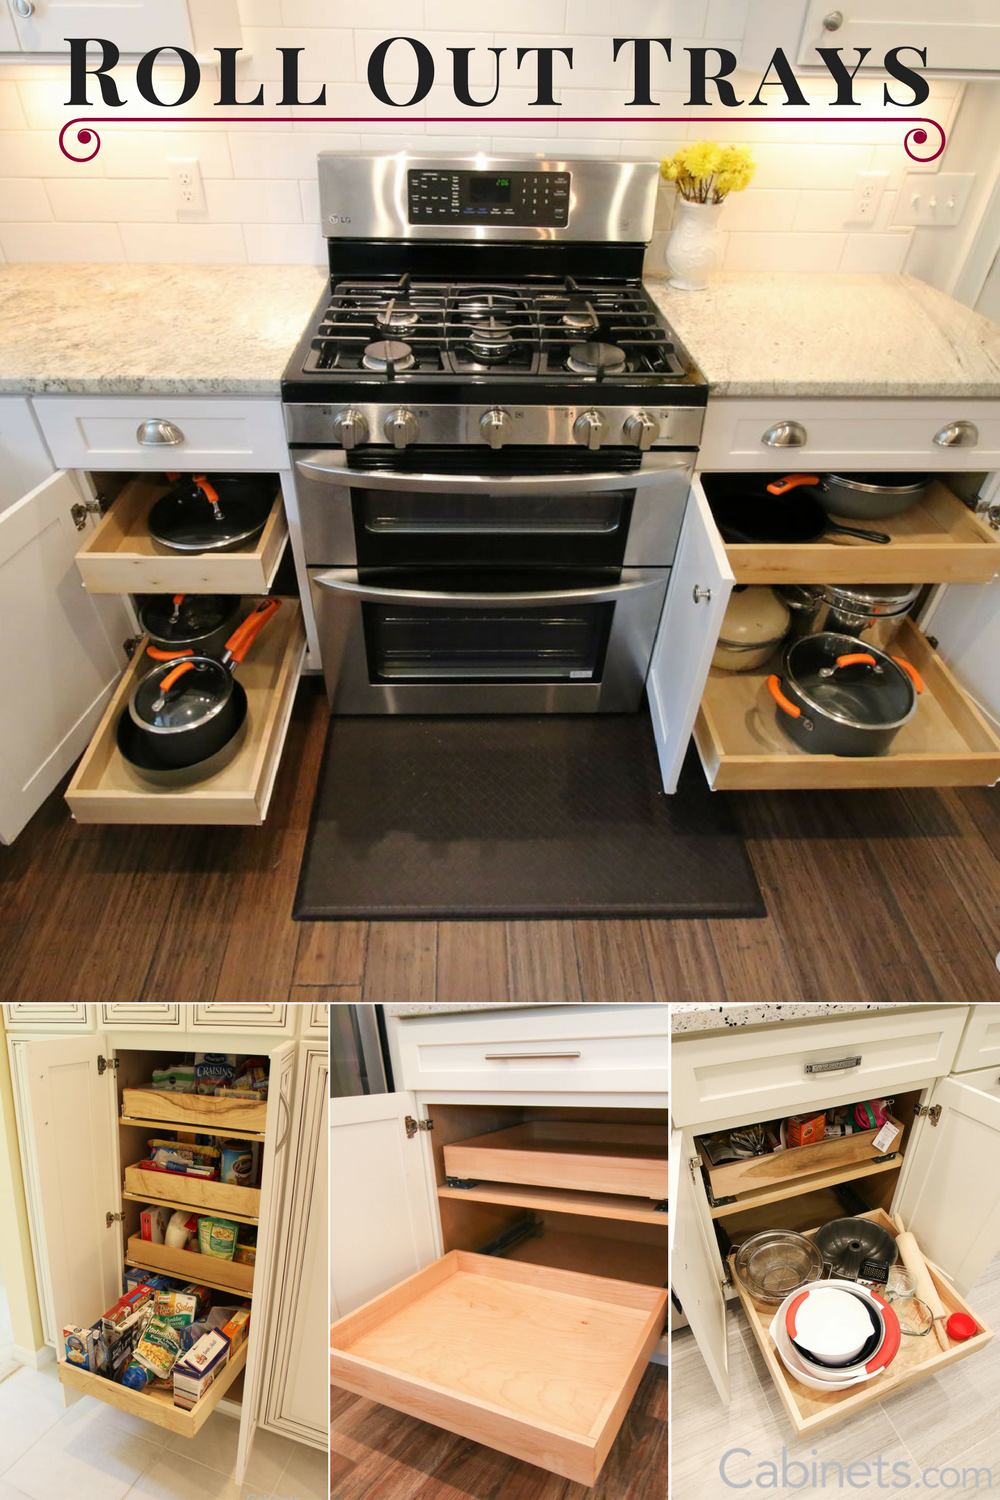 One of our most popular cabinet upgrades is to add a rollouttray